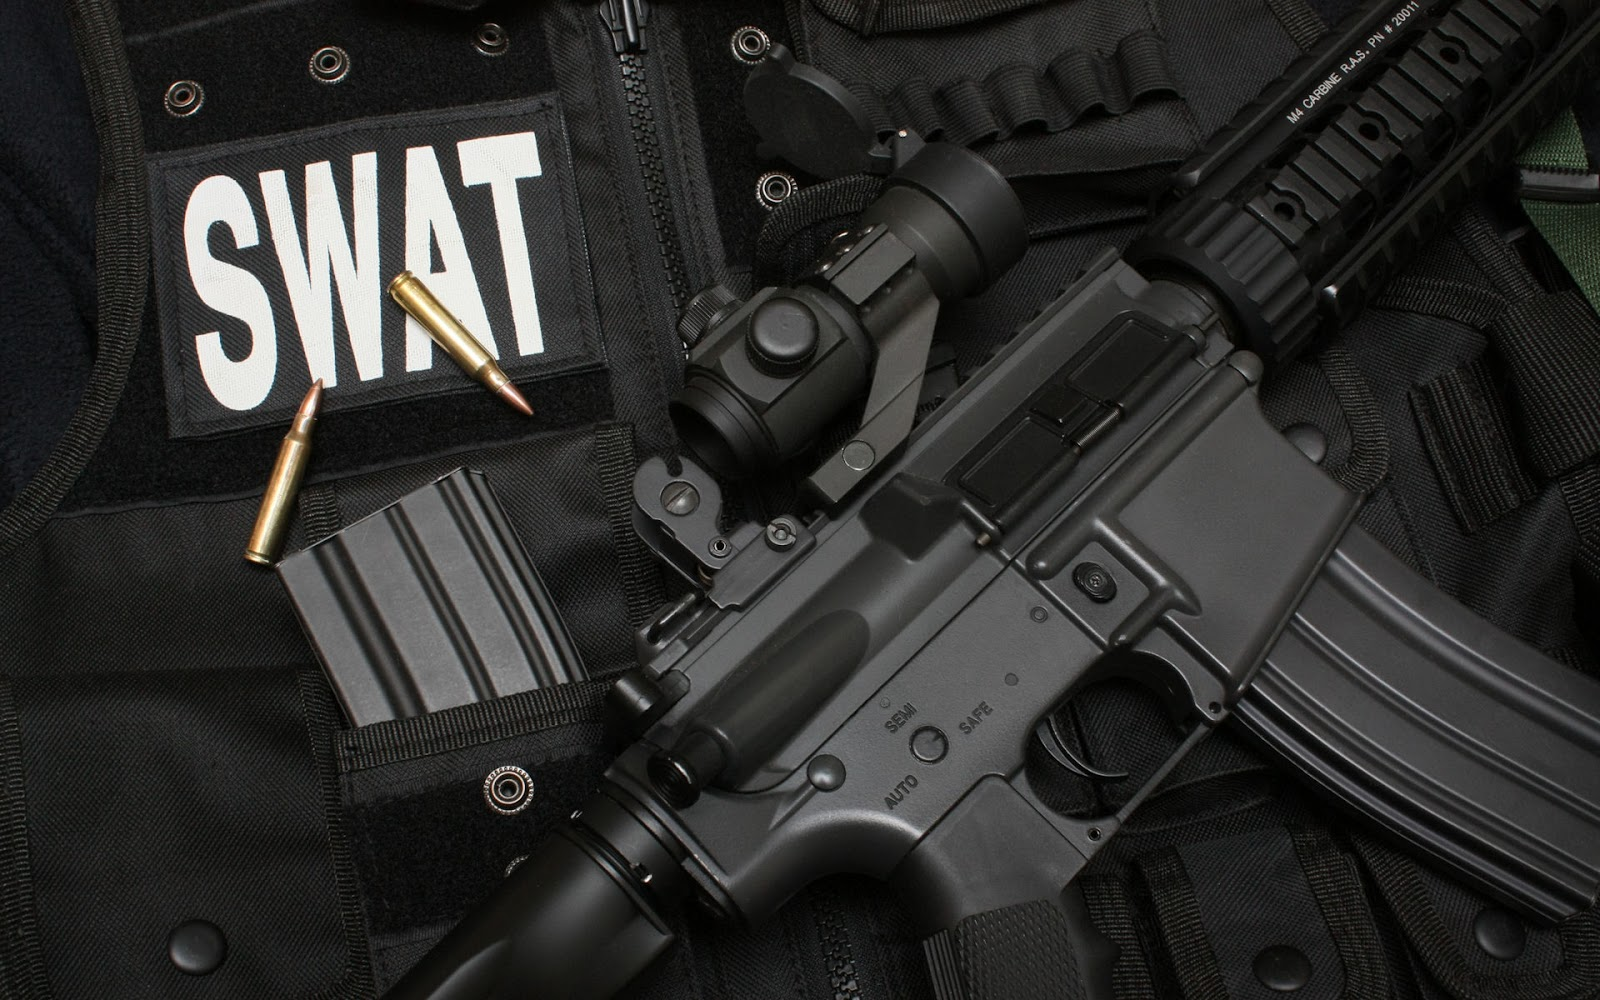 coolest gun wallpaper - photo #48